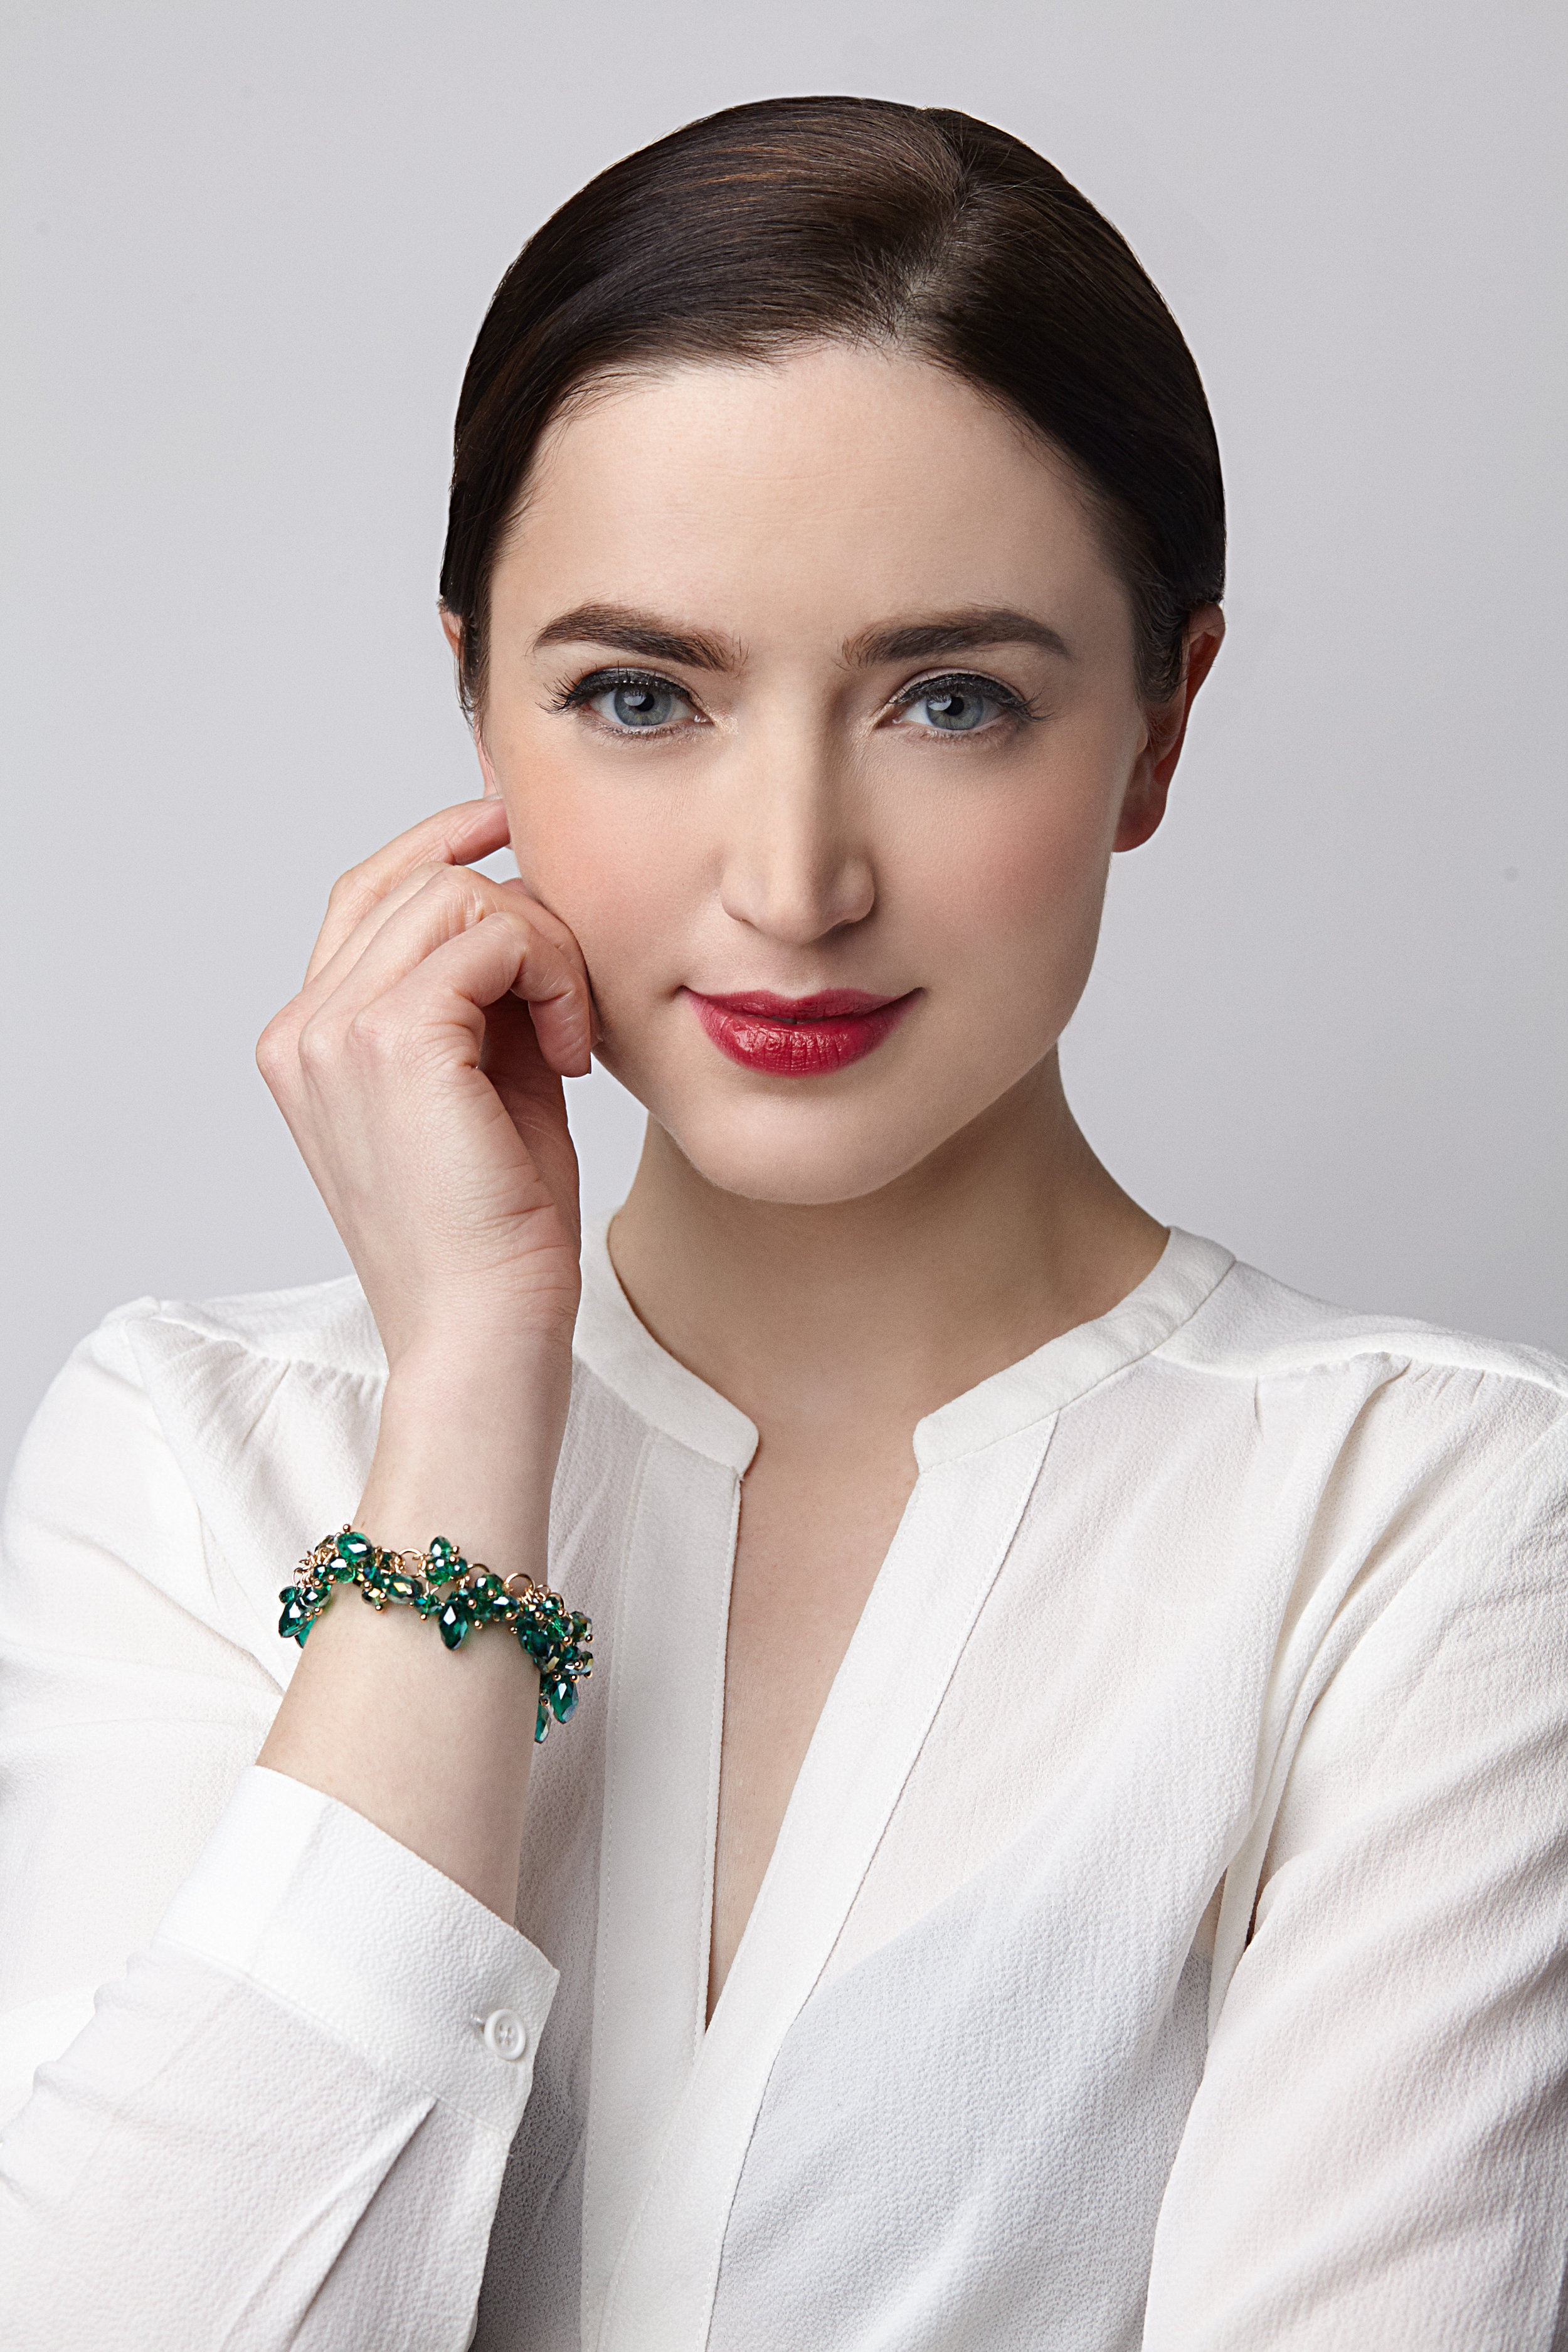 2018_01_27 Doreen Jewelry Shoot5319_retouched.jpg